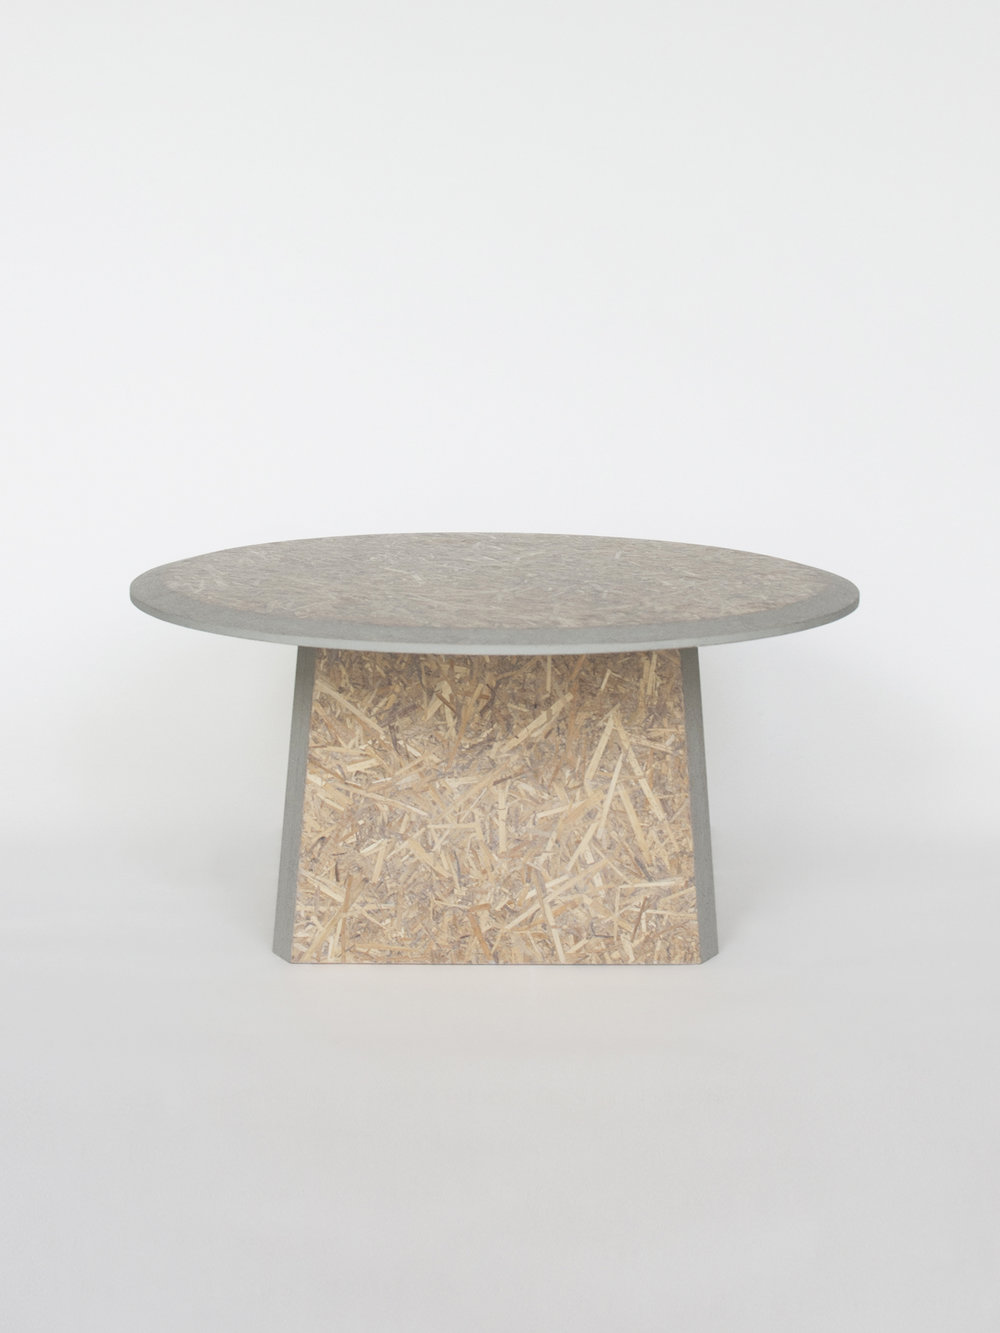 Straw sidetables -gray_side view- David Derksen Design.jpg